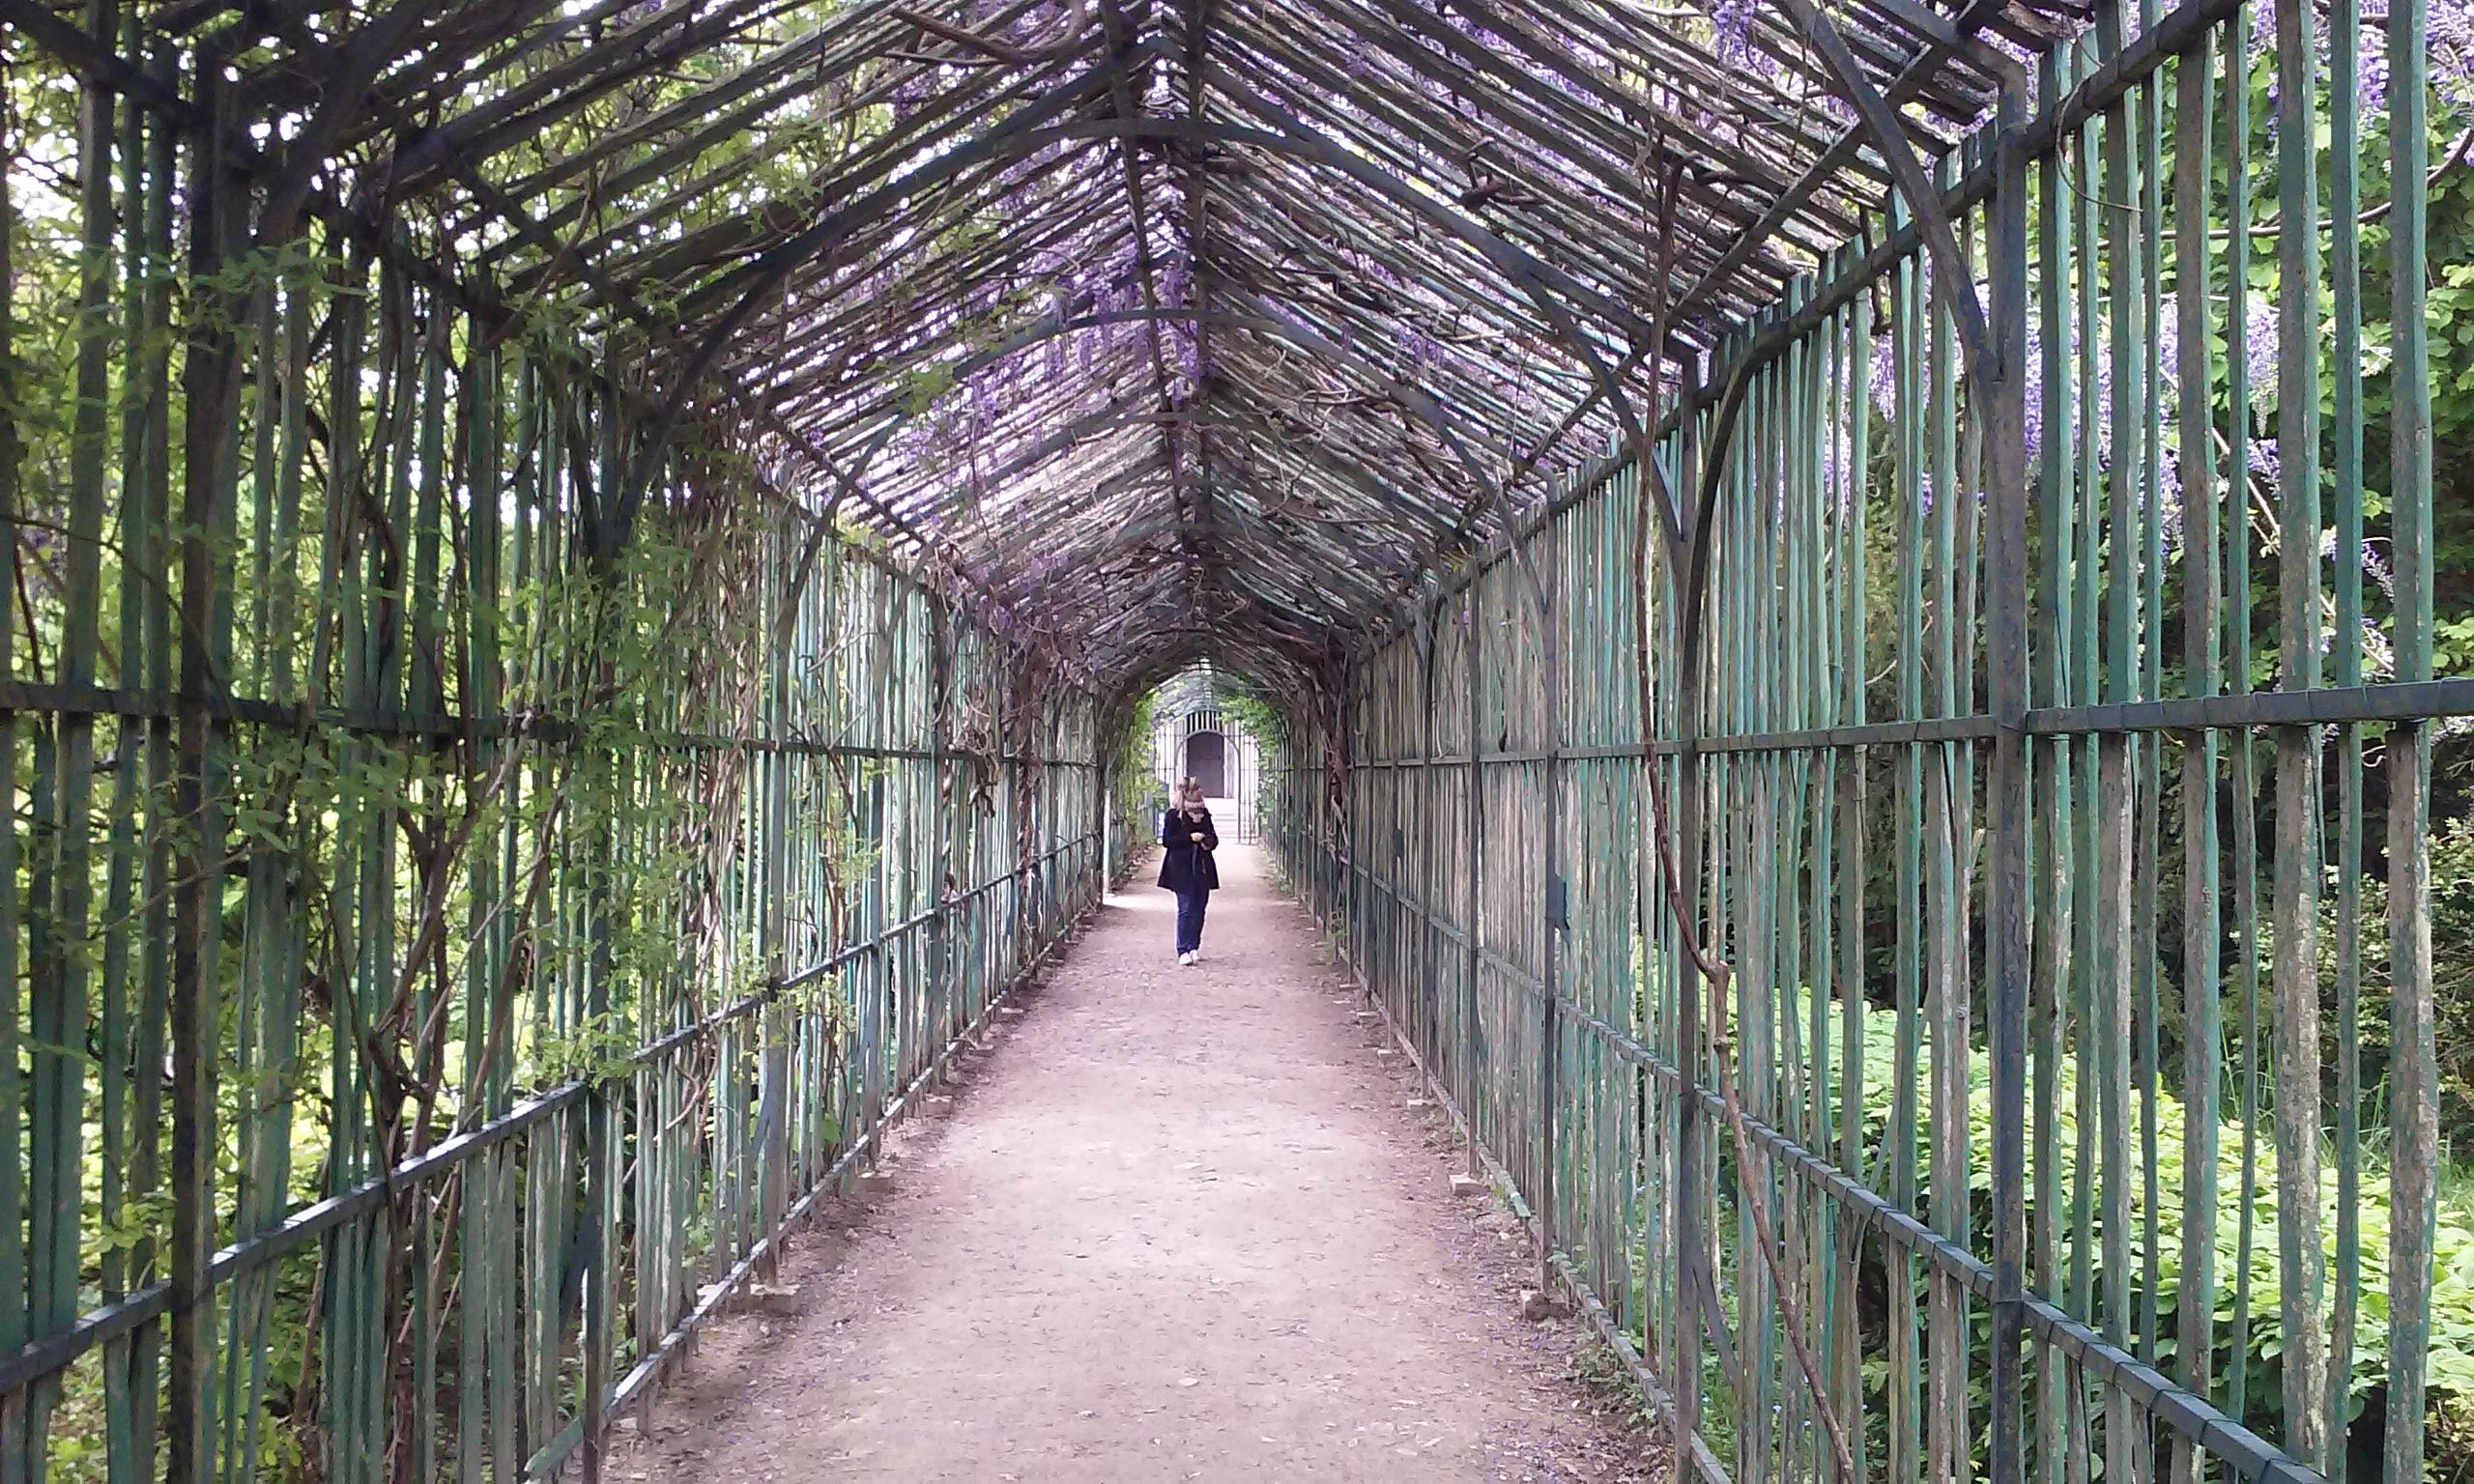 One of the paths through the gardens of Versailles. This covered pathway leads to the Quee